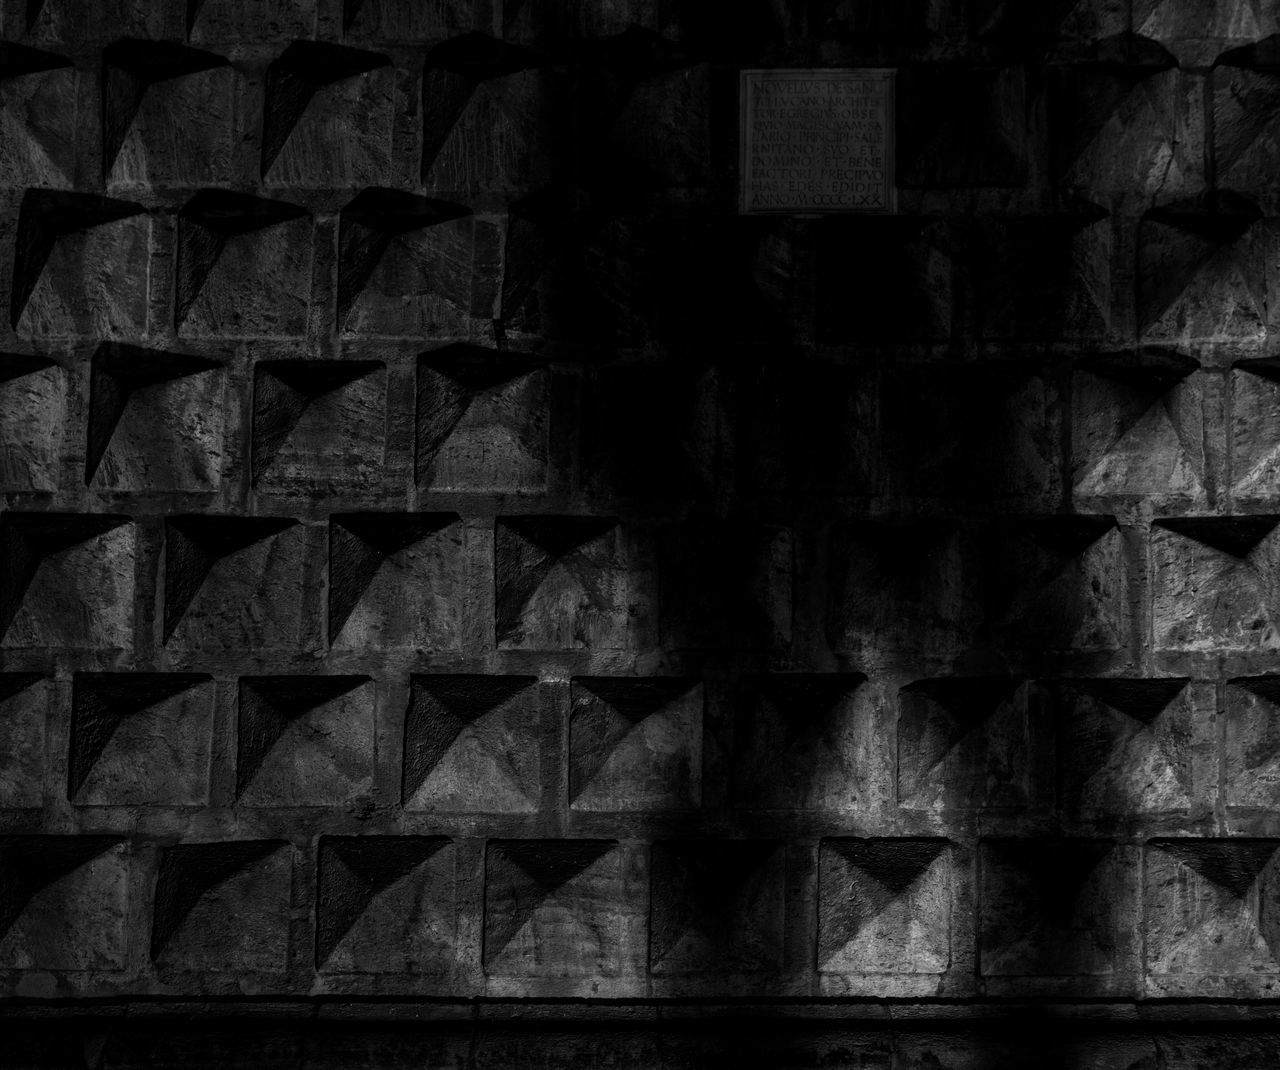 Shadows of the Past. Pattern Backgrounds Architecture You Want It Darker Architecture And Art Shadow Wall People Naples Napoli Travel Traveling Streetphotography Street Photography Travel Destinations Italia Bella Italia Italy Italy❤️ City Night Lights Night Nightphotography Blackandwhite Black And White